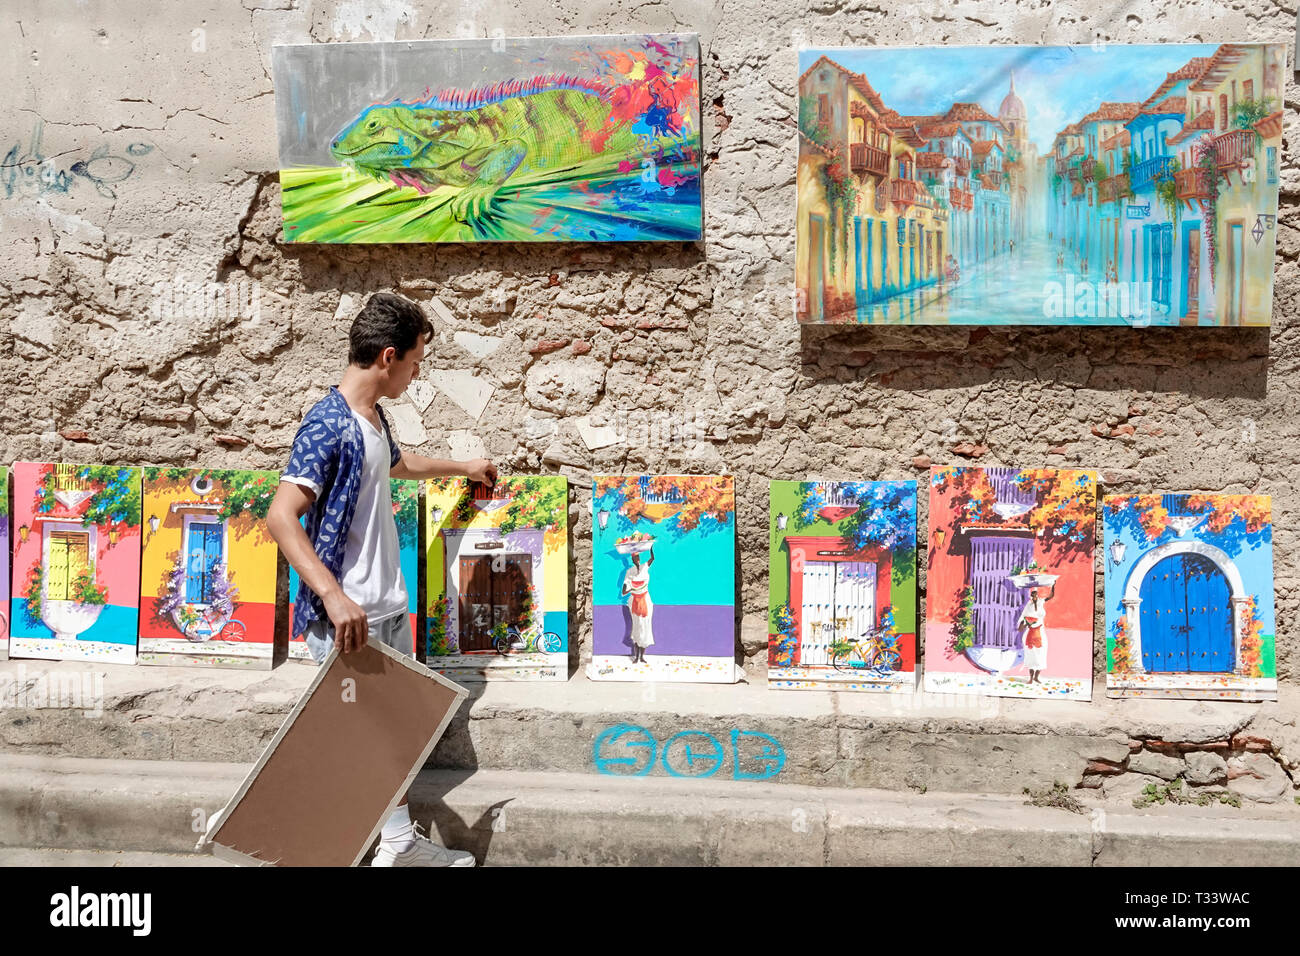 Cartagena Colombia Old Walled City Center centre Getsemani Arte Getsemani display sale art paintings souvenirs Hispanic resident residents man gallery - Stock Image